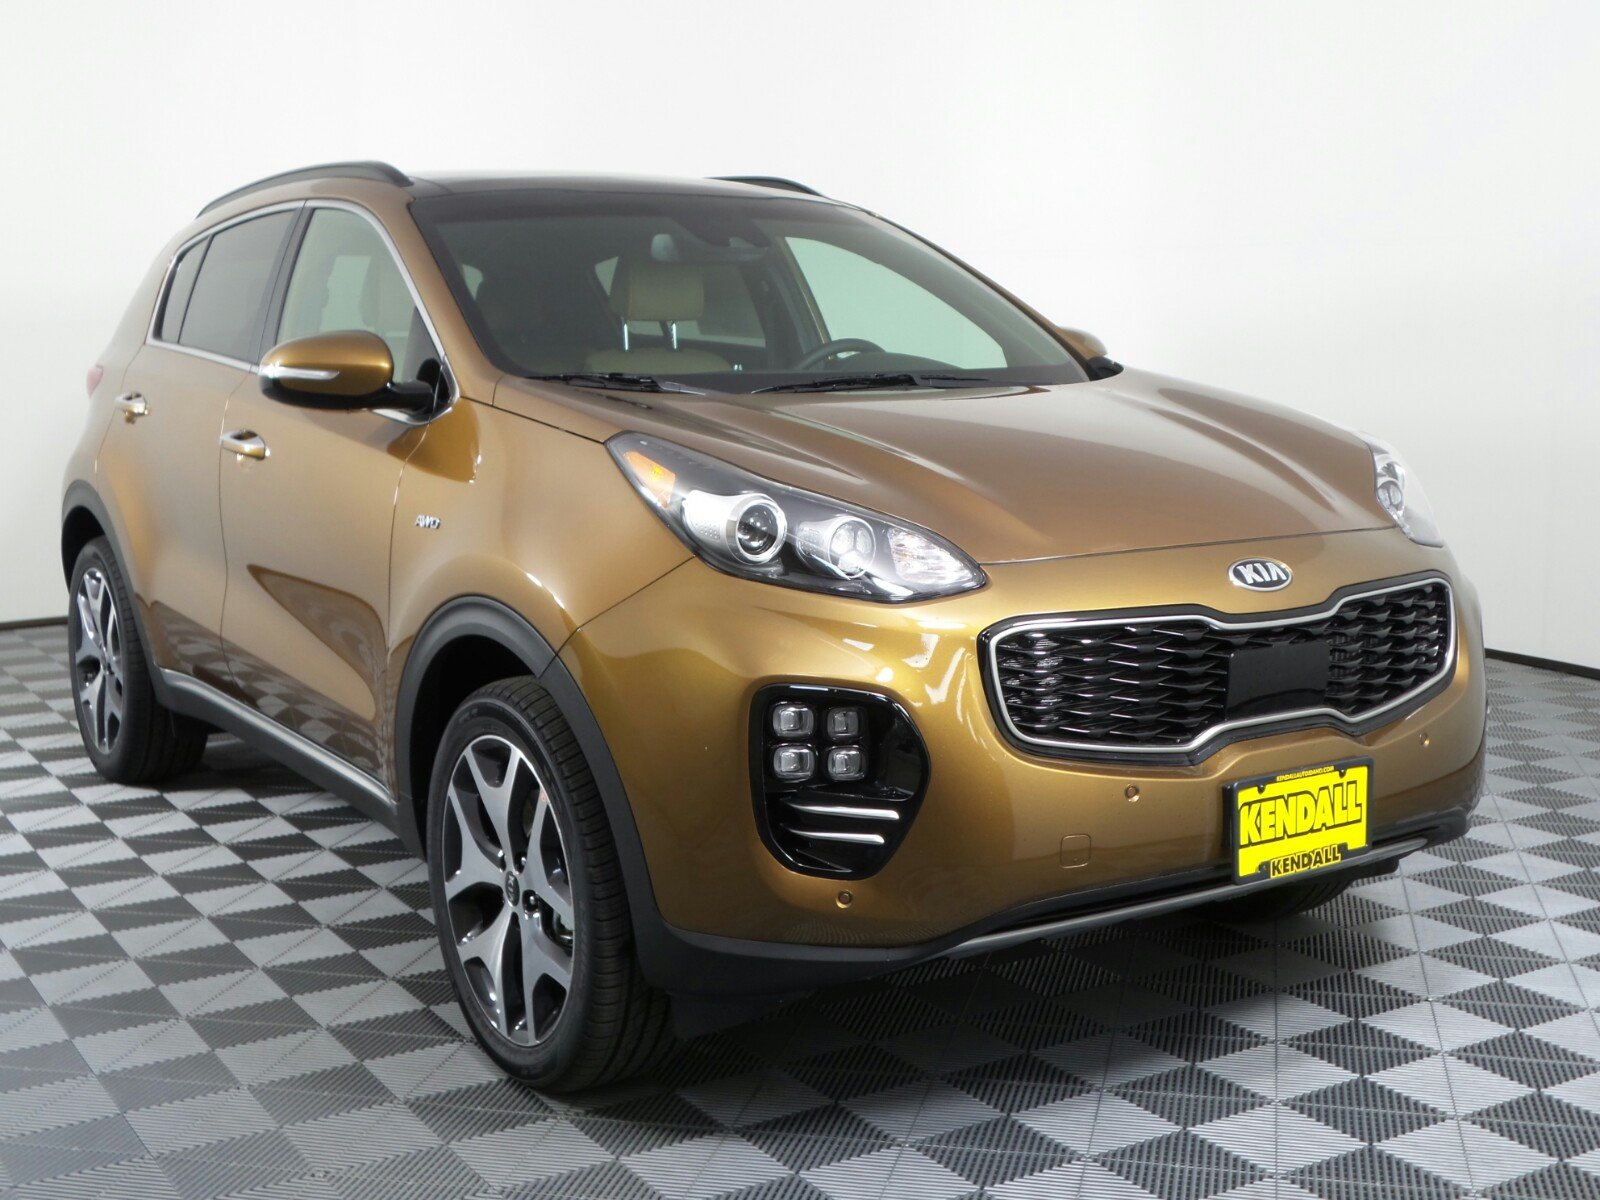 ex htm pa sportage awd suv in models kia express erie auto